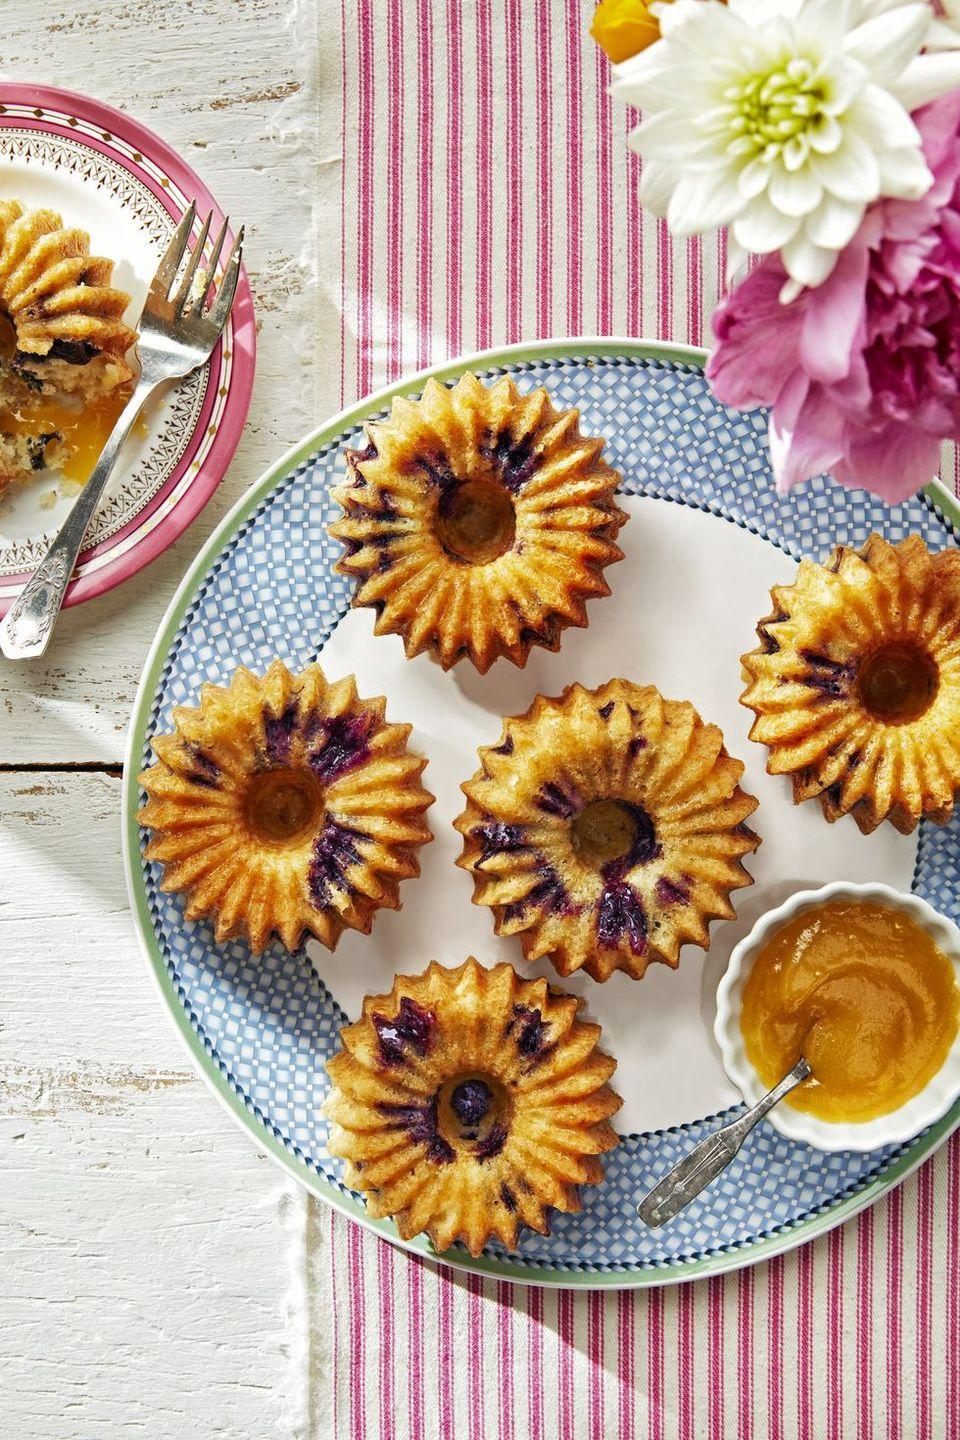 """<p>Individually sized blueberry Bundt cakes make a perfect ending to a spectacular Father's day brunch.<a href=""""https://www.countryliving.com/food-drinks/a27245094/meyer-lemon-blueberry-cake-recipe/"""" rel=""""nofollow noopener"""" target=""""_blank"""" data-ylk=""""slk:"""" class=""""link rapid-noclick-resp""""><br></a></p><p><strong><a href=""""https://www.countryliving.com/food-drinks/a27245094/meyer-lemon-blueberry-cake-recipe/"""" rel=""""nofollow noopener"""" target=""""_blank"""" data-ylk=""""slk:Get the recipe"""" class=""""link rapid-noclick-resp"""">Get the recipe</a>.</strong> </p>"""